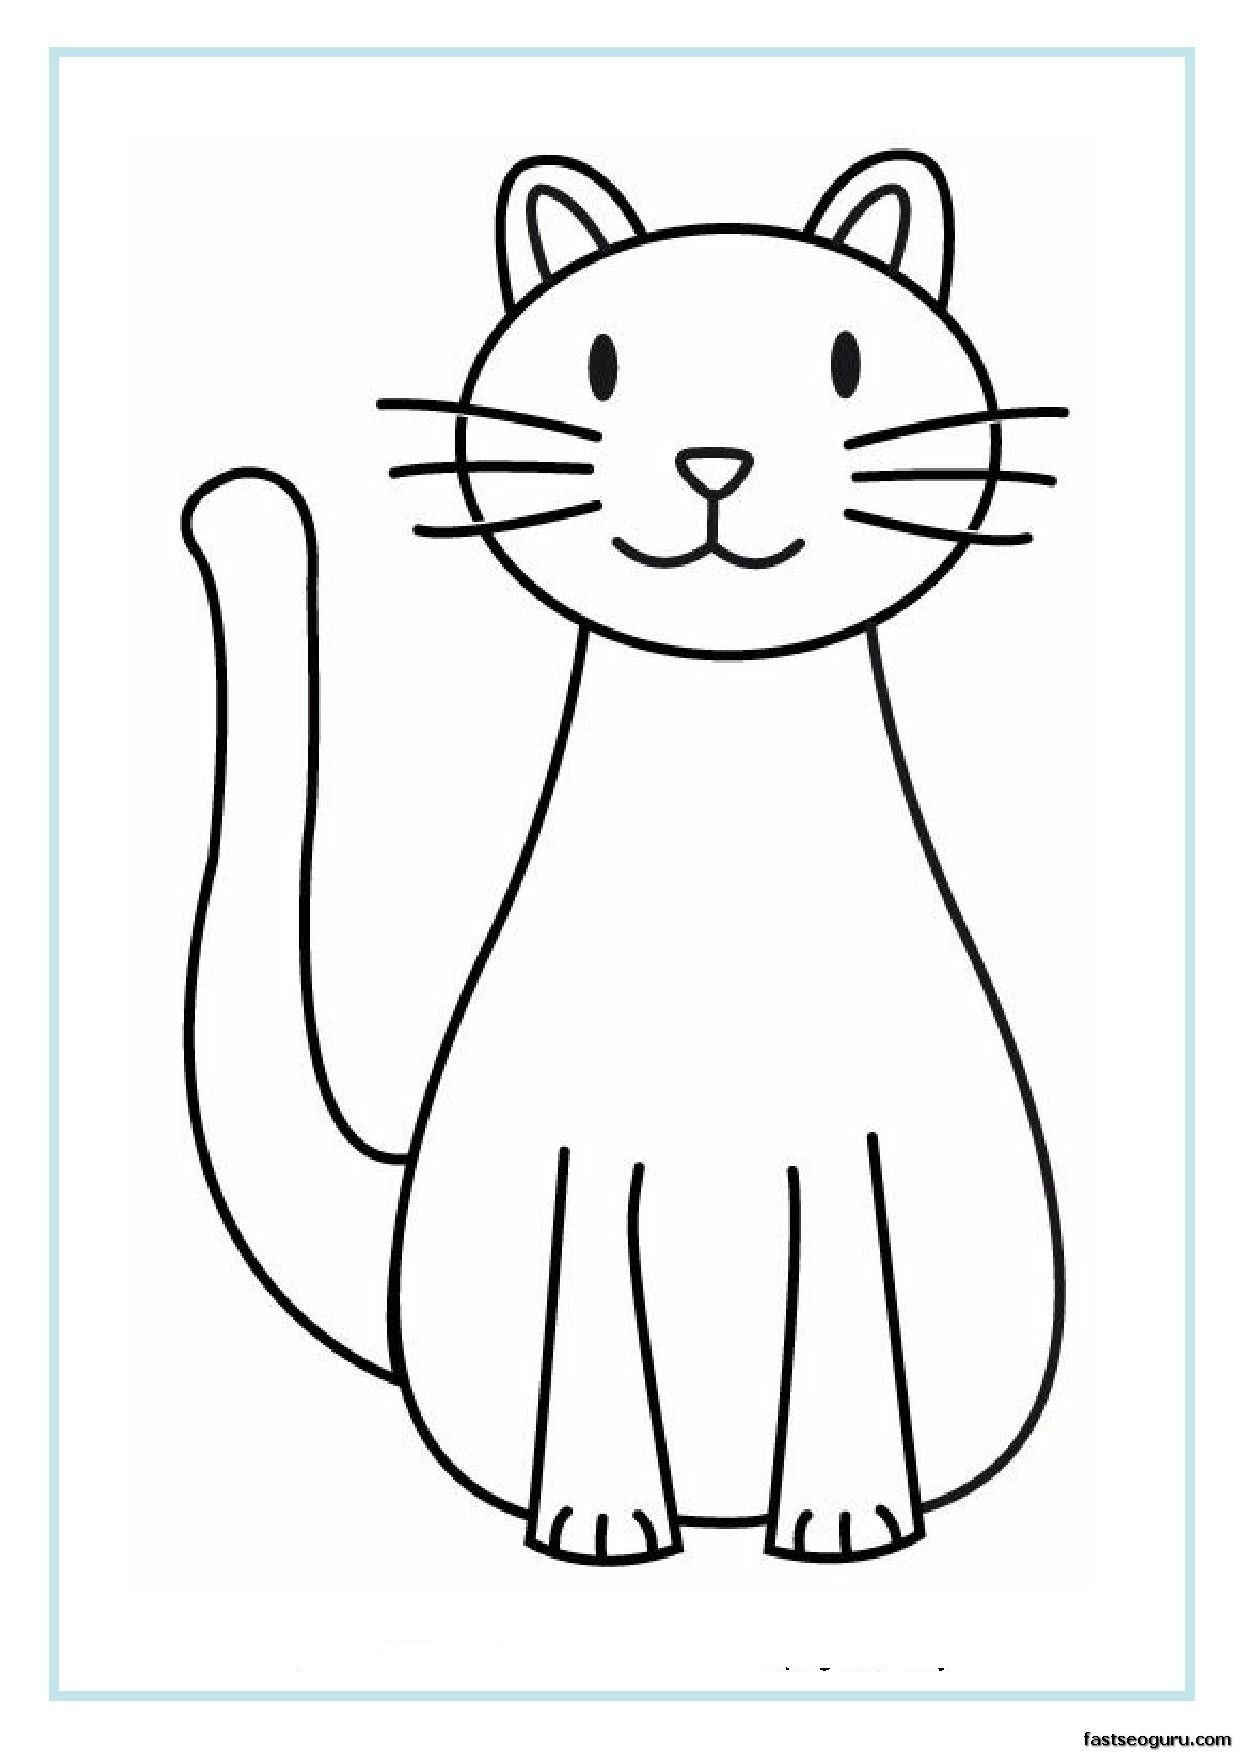 Printable Cat coloring pages for kids Dibujos